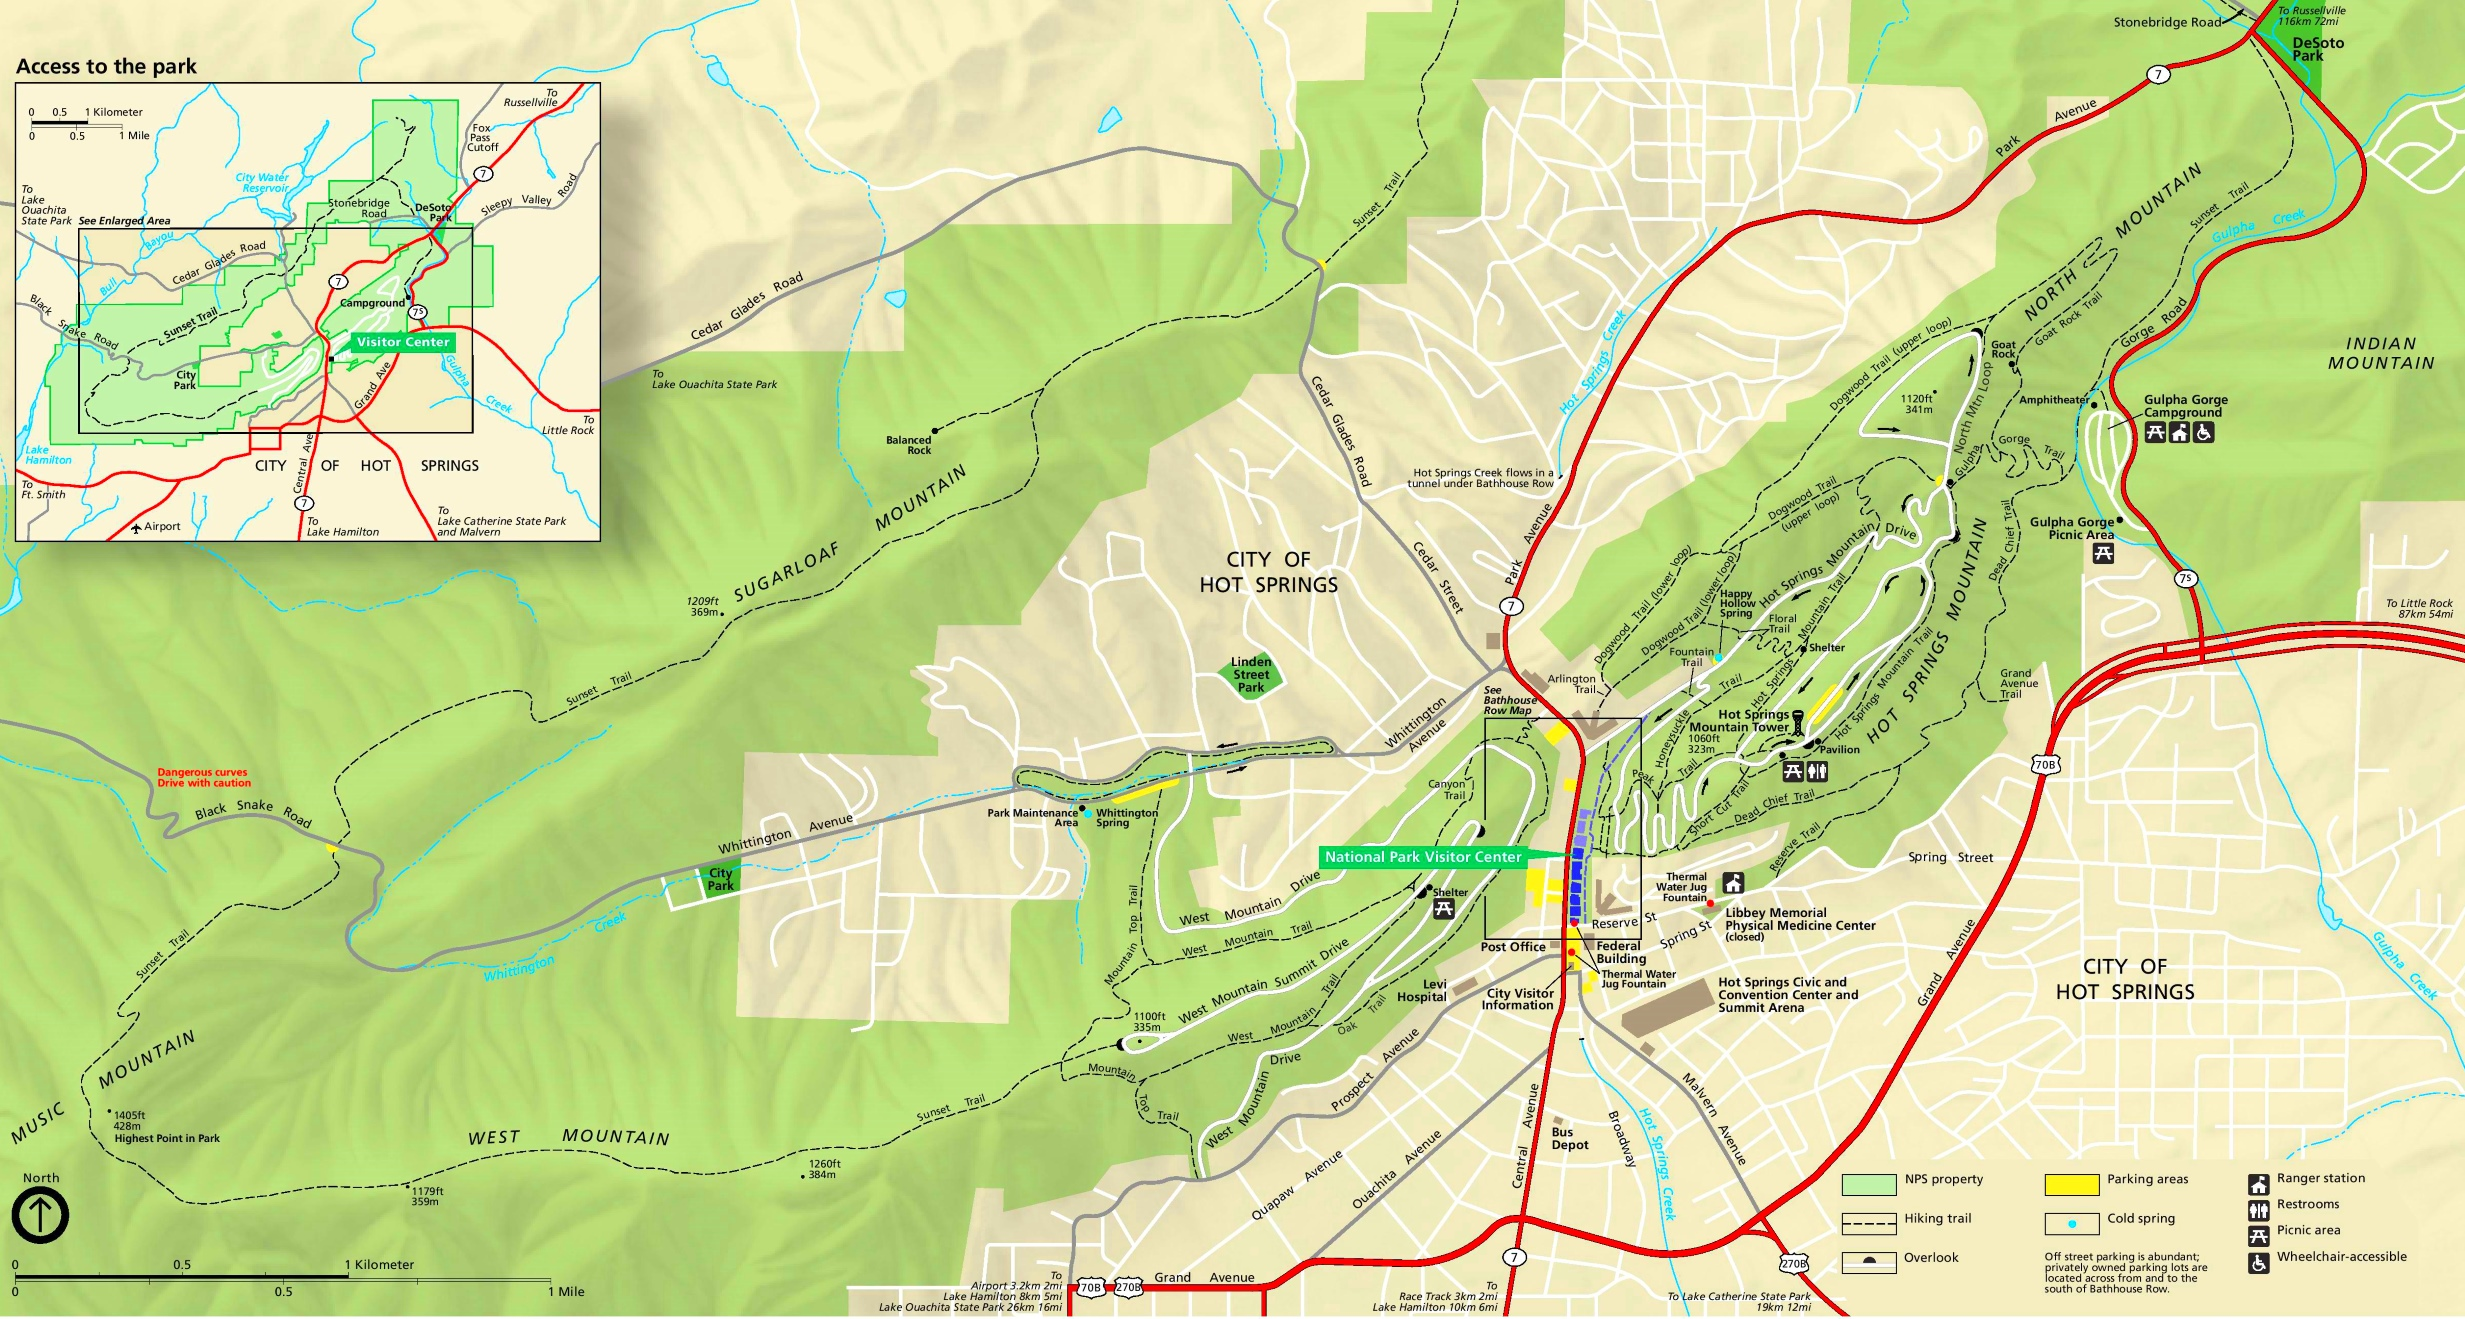 hot springs tourist map hot springs tourist map hot springs tourist map coloradosprings printable tourist map colorado springs printable tourist map. colorado springs printable tourist map city maps for mcpe map of